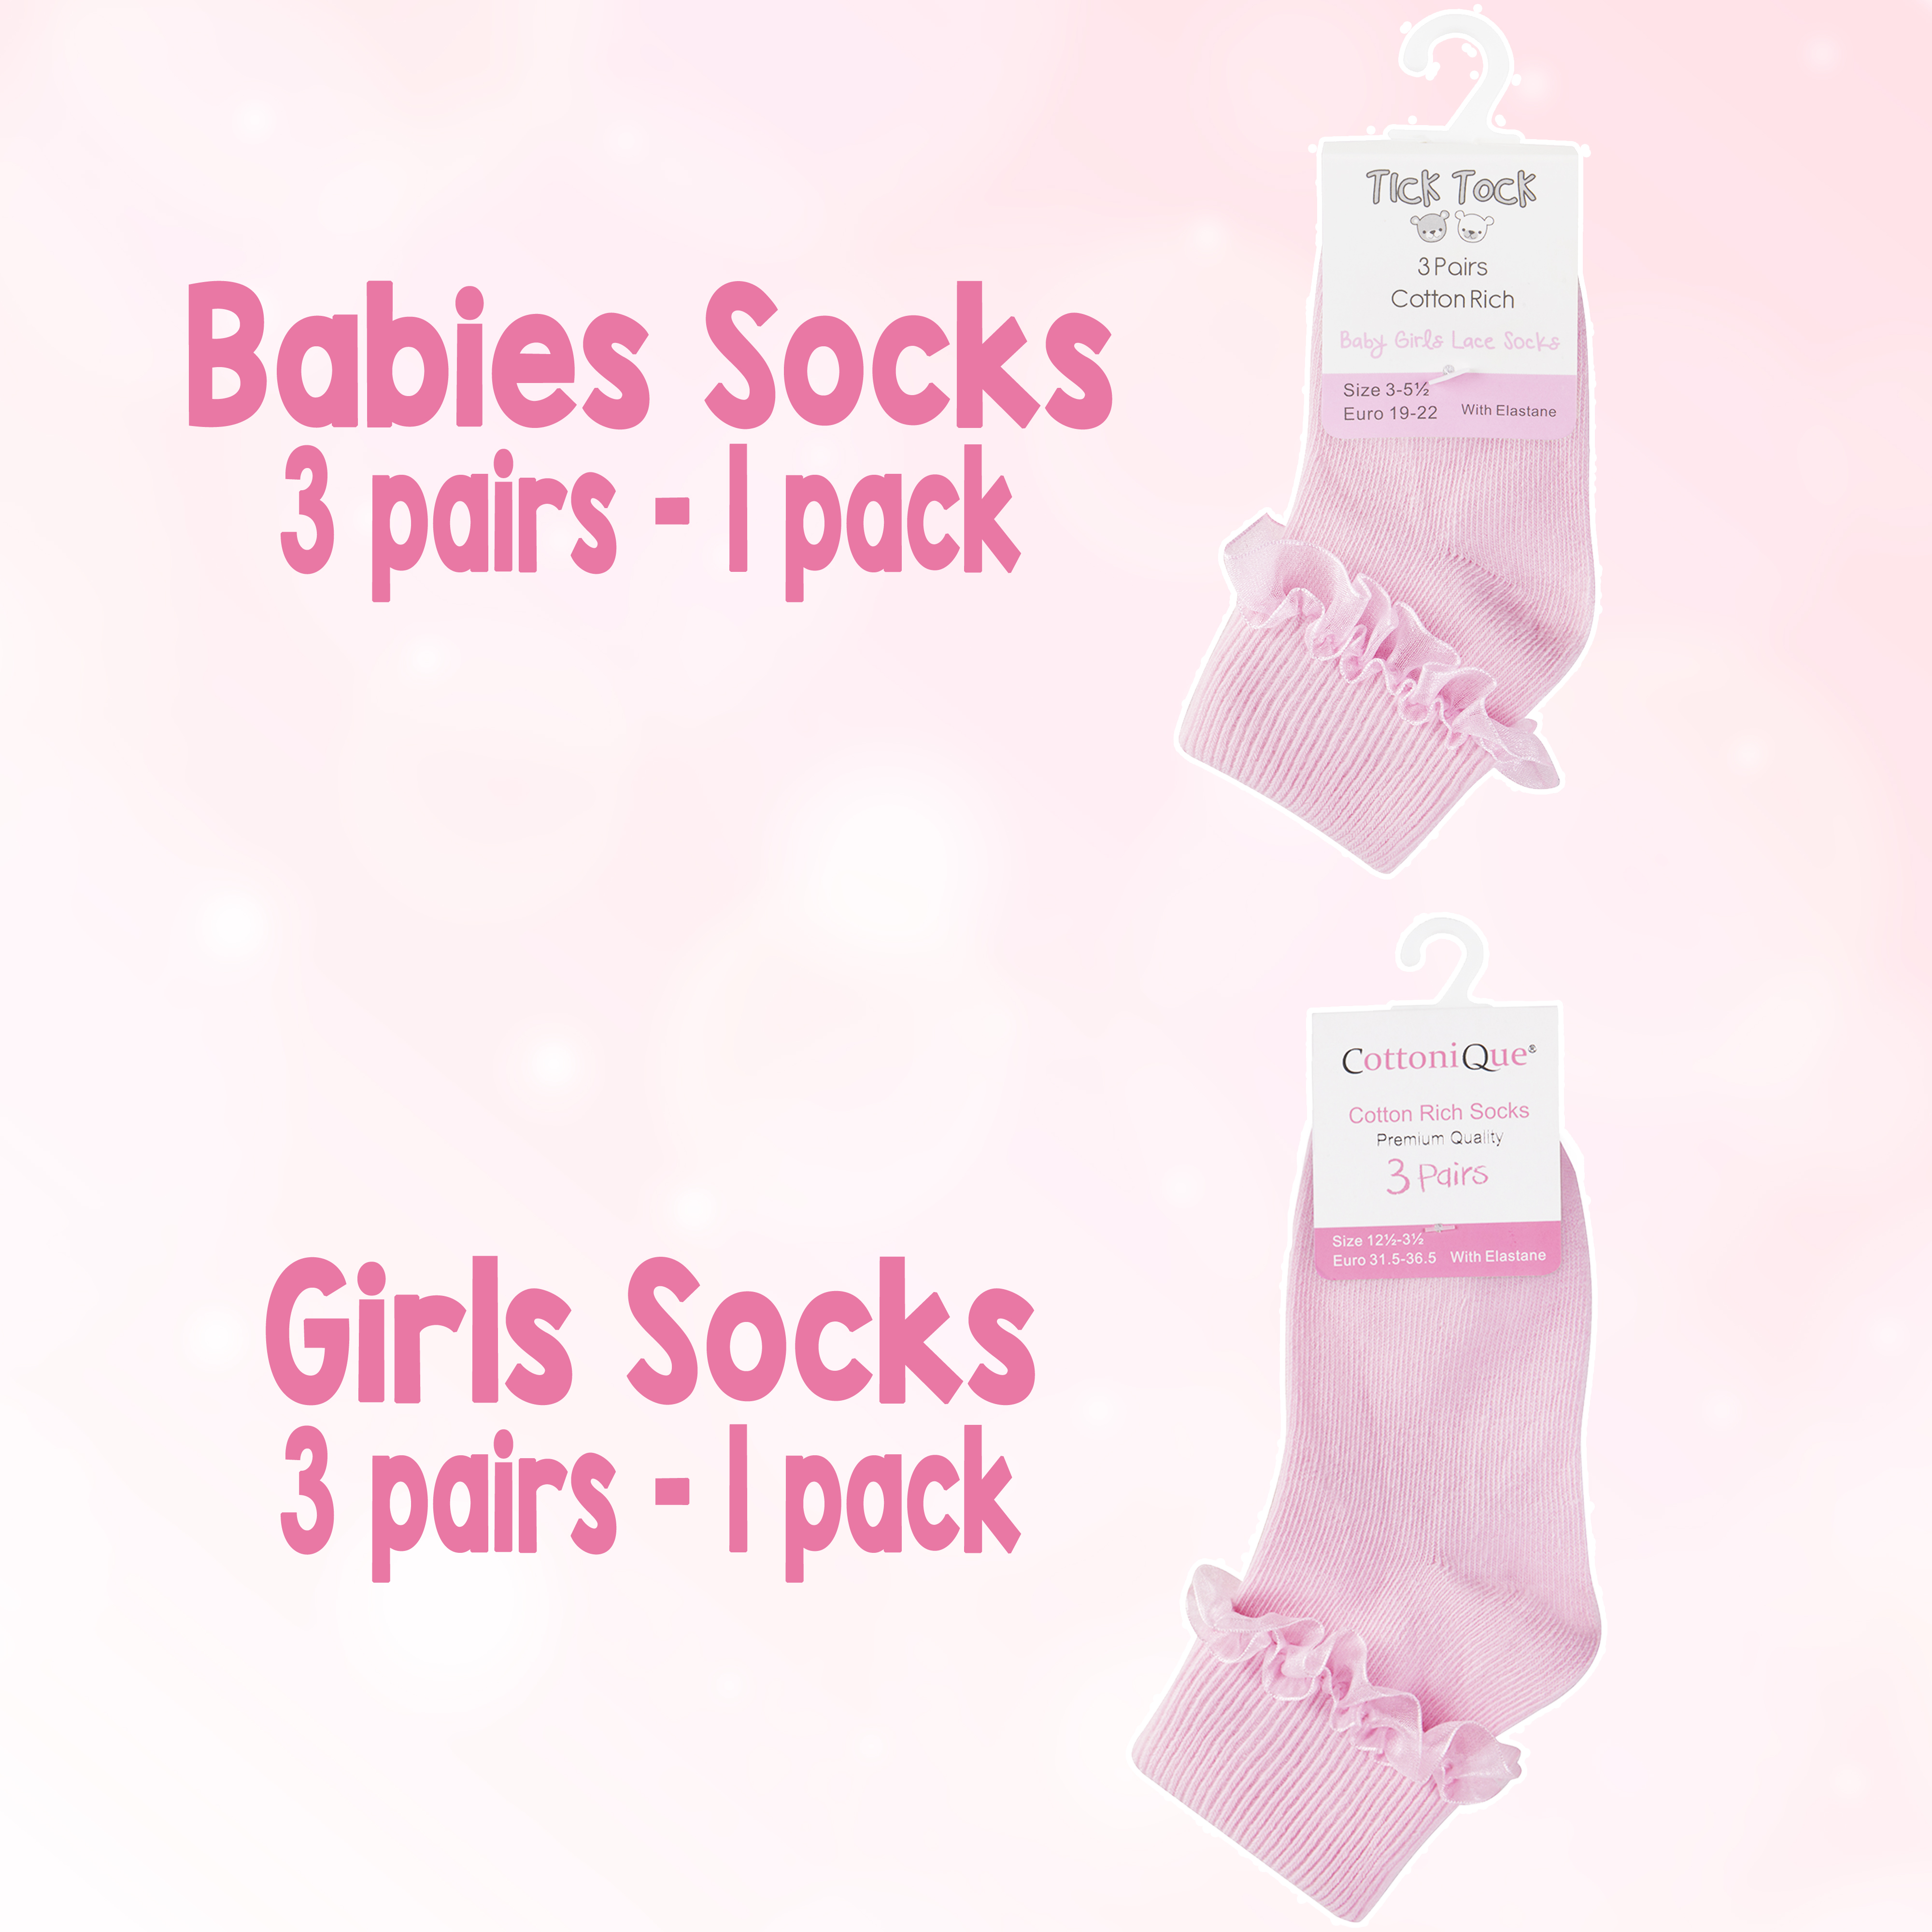 9 Pairs Kids Girls Frilly Plain Lace Ankle Socks Cotton Rich Uniform Sizes 6-8.5 up to 4-5.5 UK